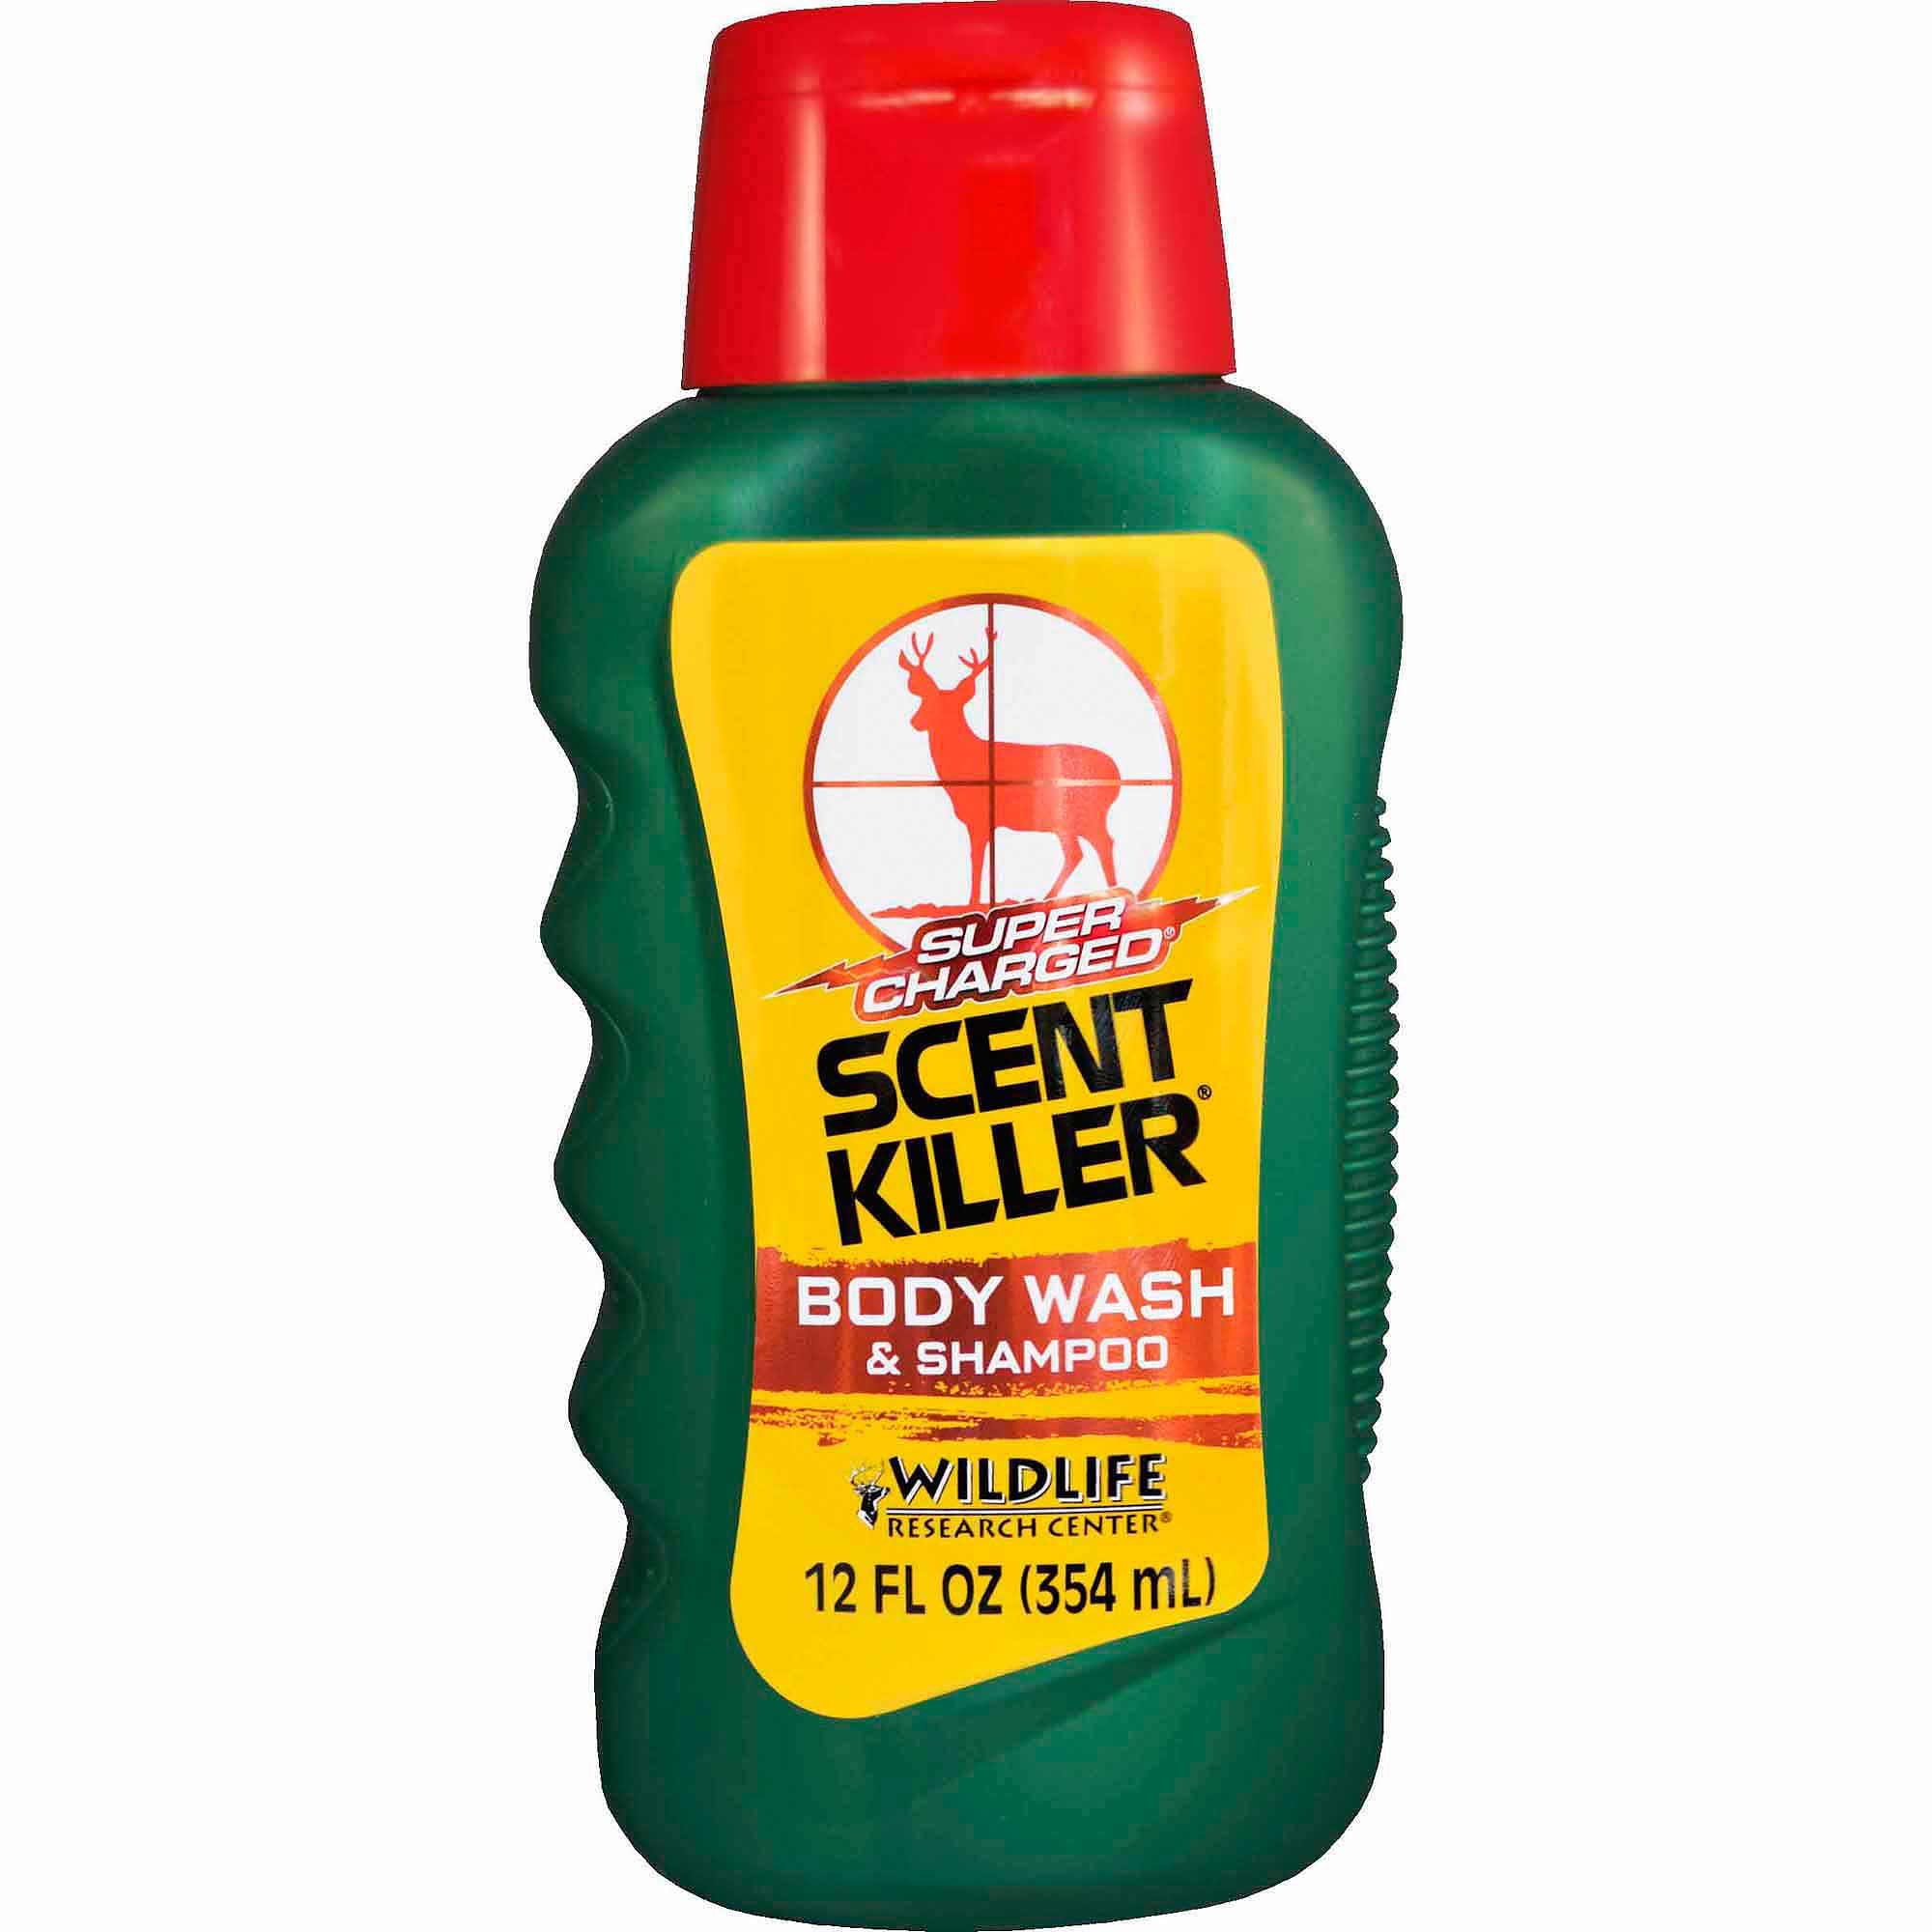 Wildlife Research Center Super Charged Scent Killer Body Wash and Shampoo, 12 fl oz